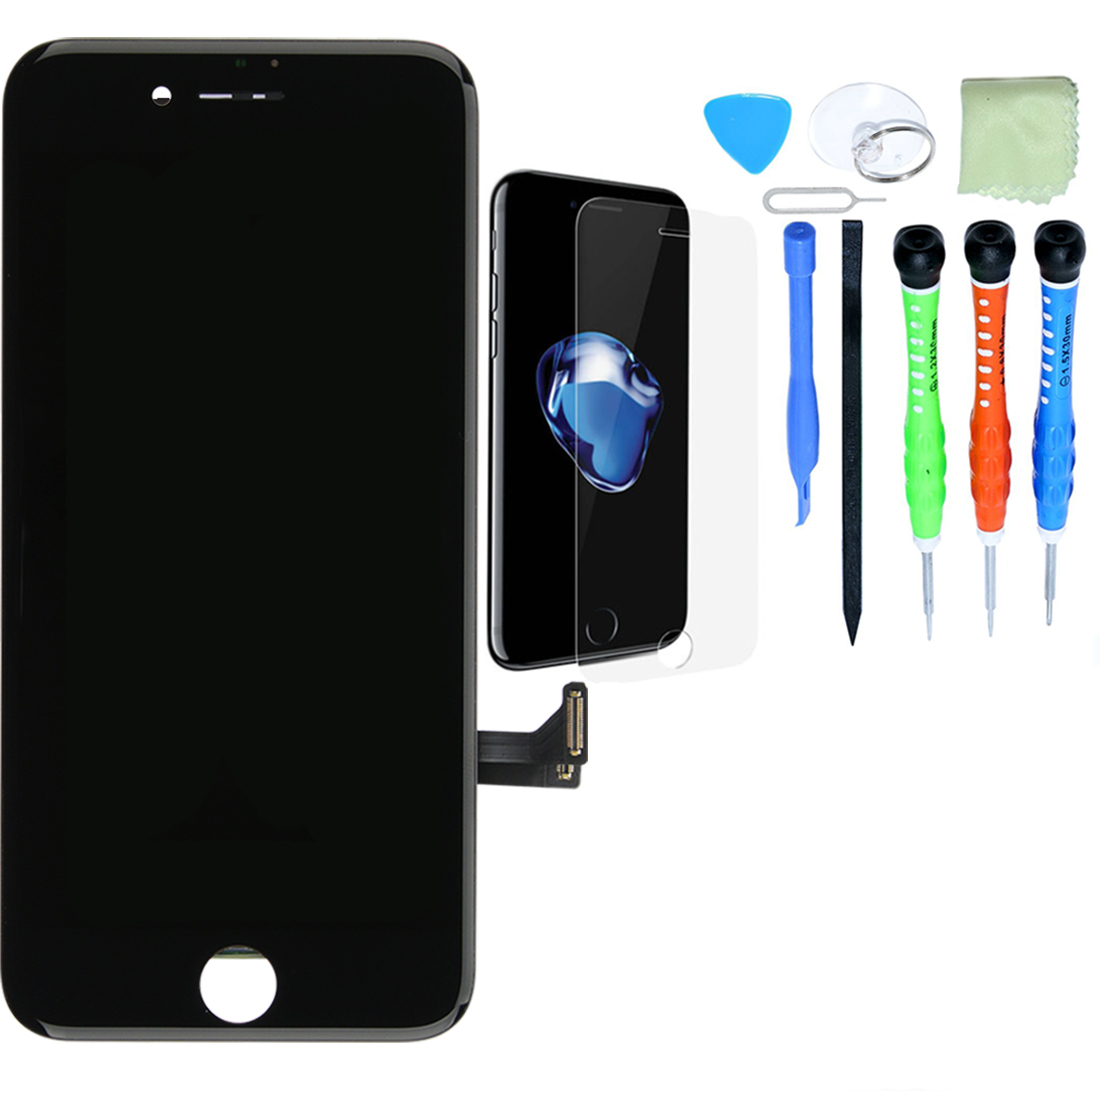 iPhone LCD Screen and Digitizer Repair Kits - iPhone 5C - Black